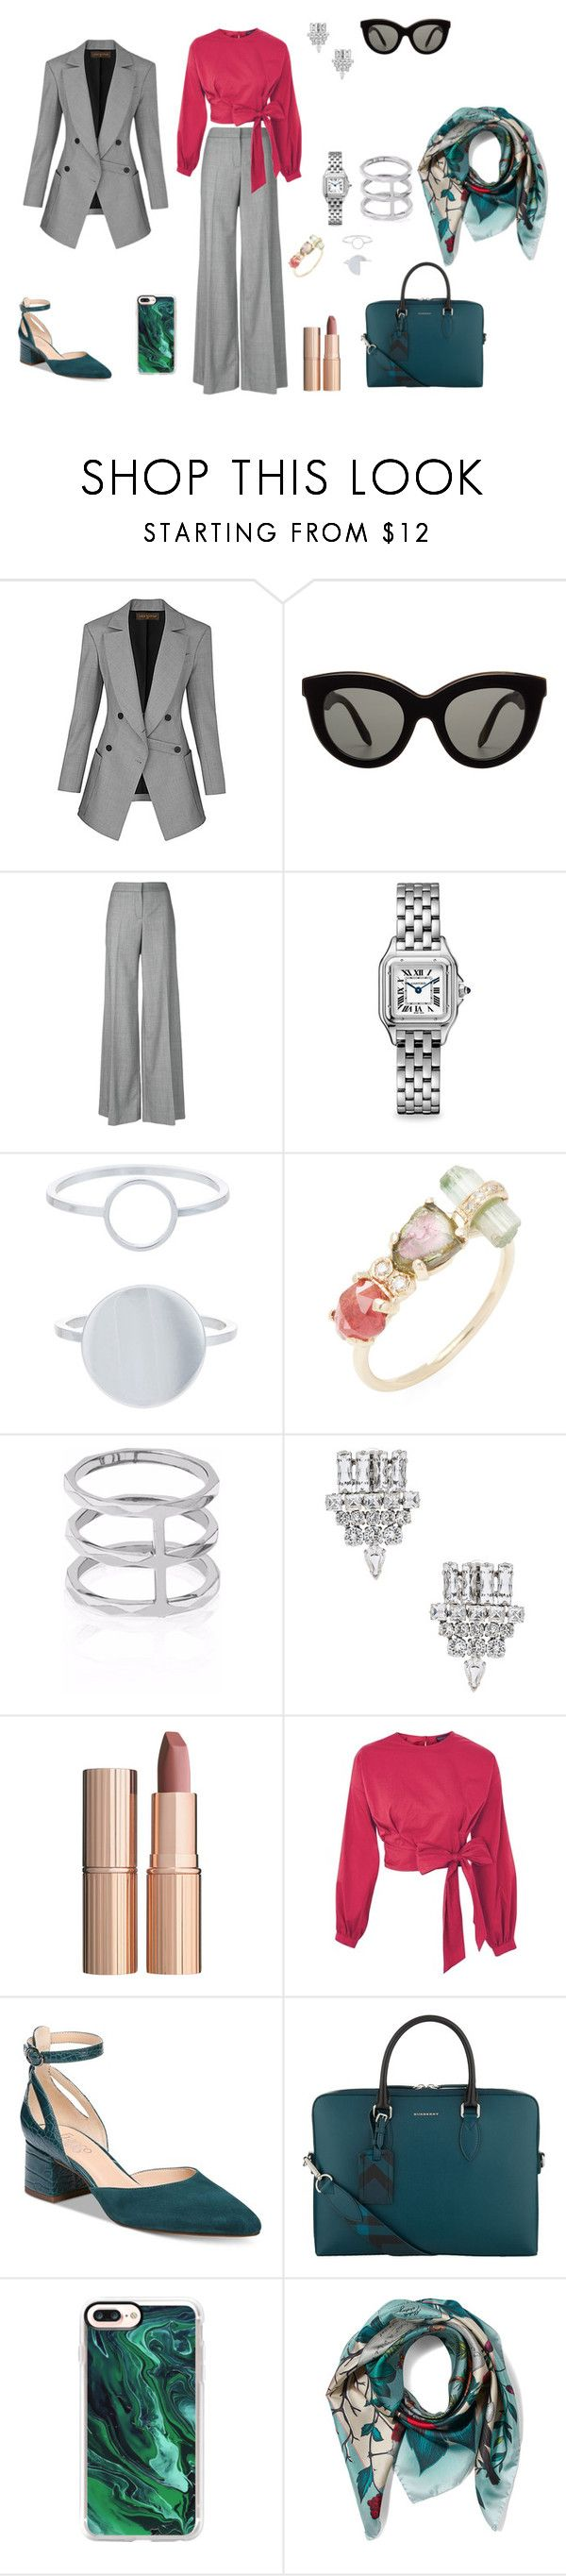 """ofi"" by ananleke on Polyvore featuring moda, Victoria Beckham, Alexander McQueen, Cartier, Accessorize, Jacquie Aiche, Edge of Ember, Yves Saint Laurent, Charlotte Tilbury y Topshop"